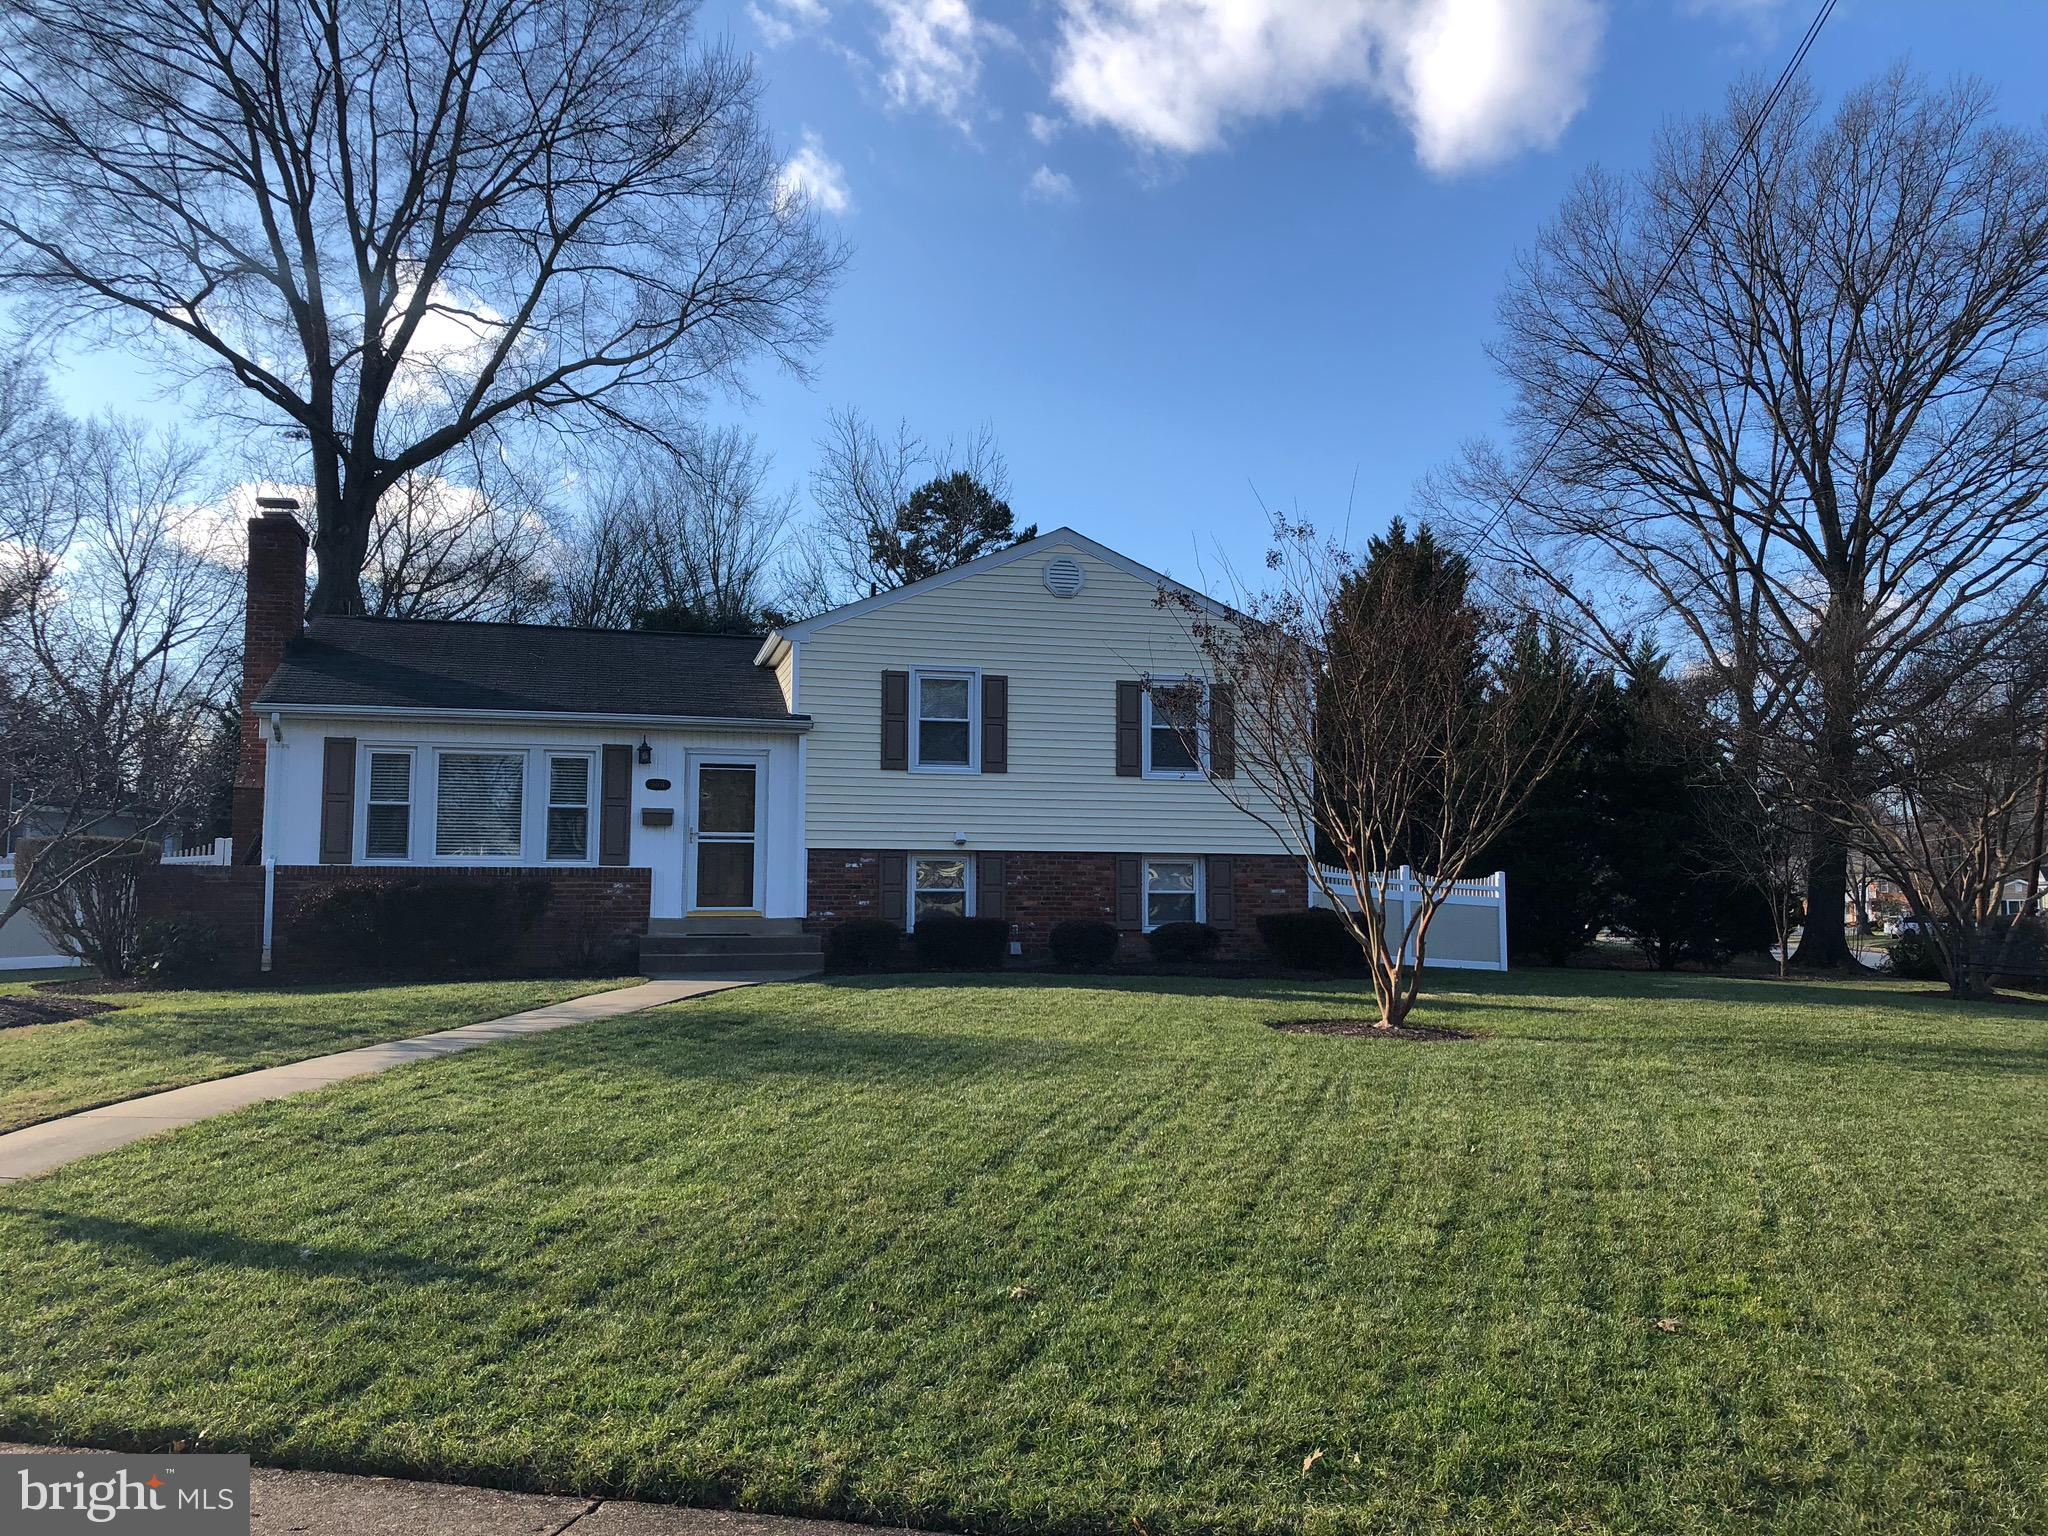 EXPANDED SARATOGA MODEL W/IN-LAW SUITE,4 BRS,3 BAS,FIREPLACE,HARDWOOD FLS!!WALK TO WAYNEWOOD SCHOOL!!NOTHING TO DO!!EASY COMMUTE TO PENTAGON,D.C.,BELVOIR & ALEX.